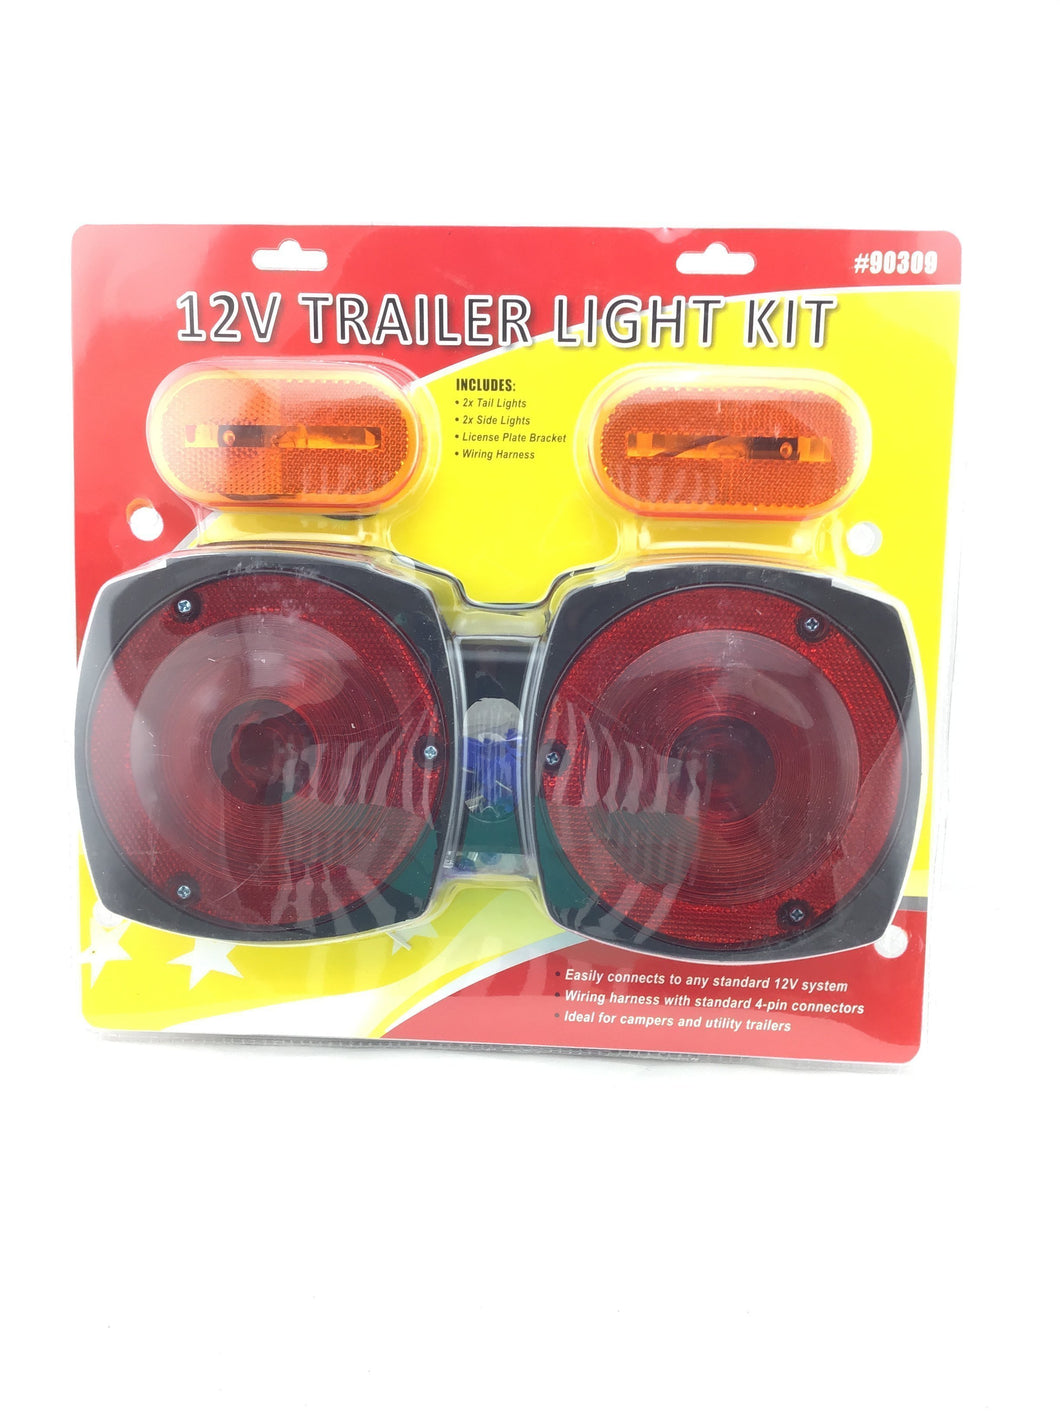 12V Trailer Light Kit out of stock 6.19.19-OTHER ITEMS-Tool Mart Inc.